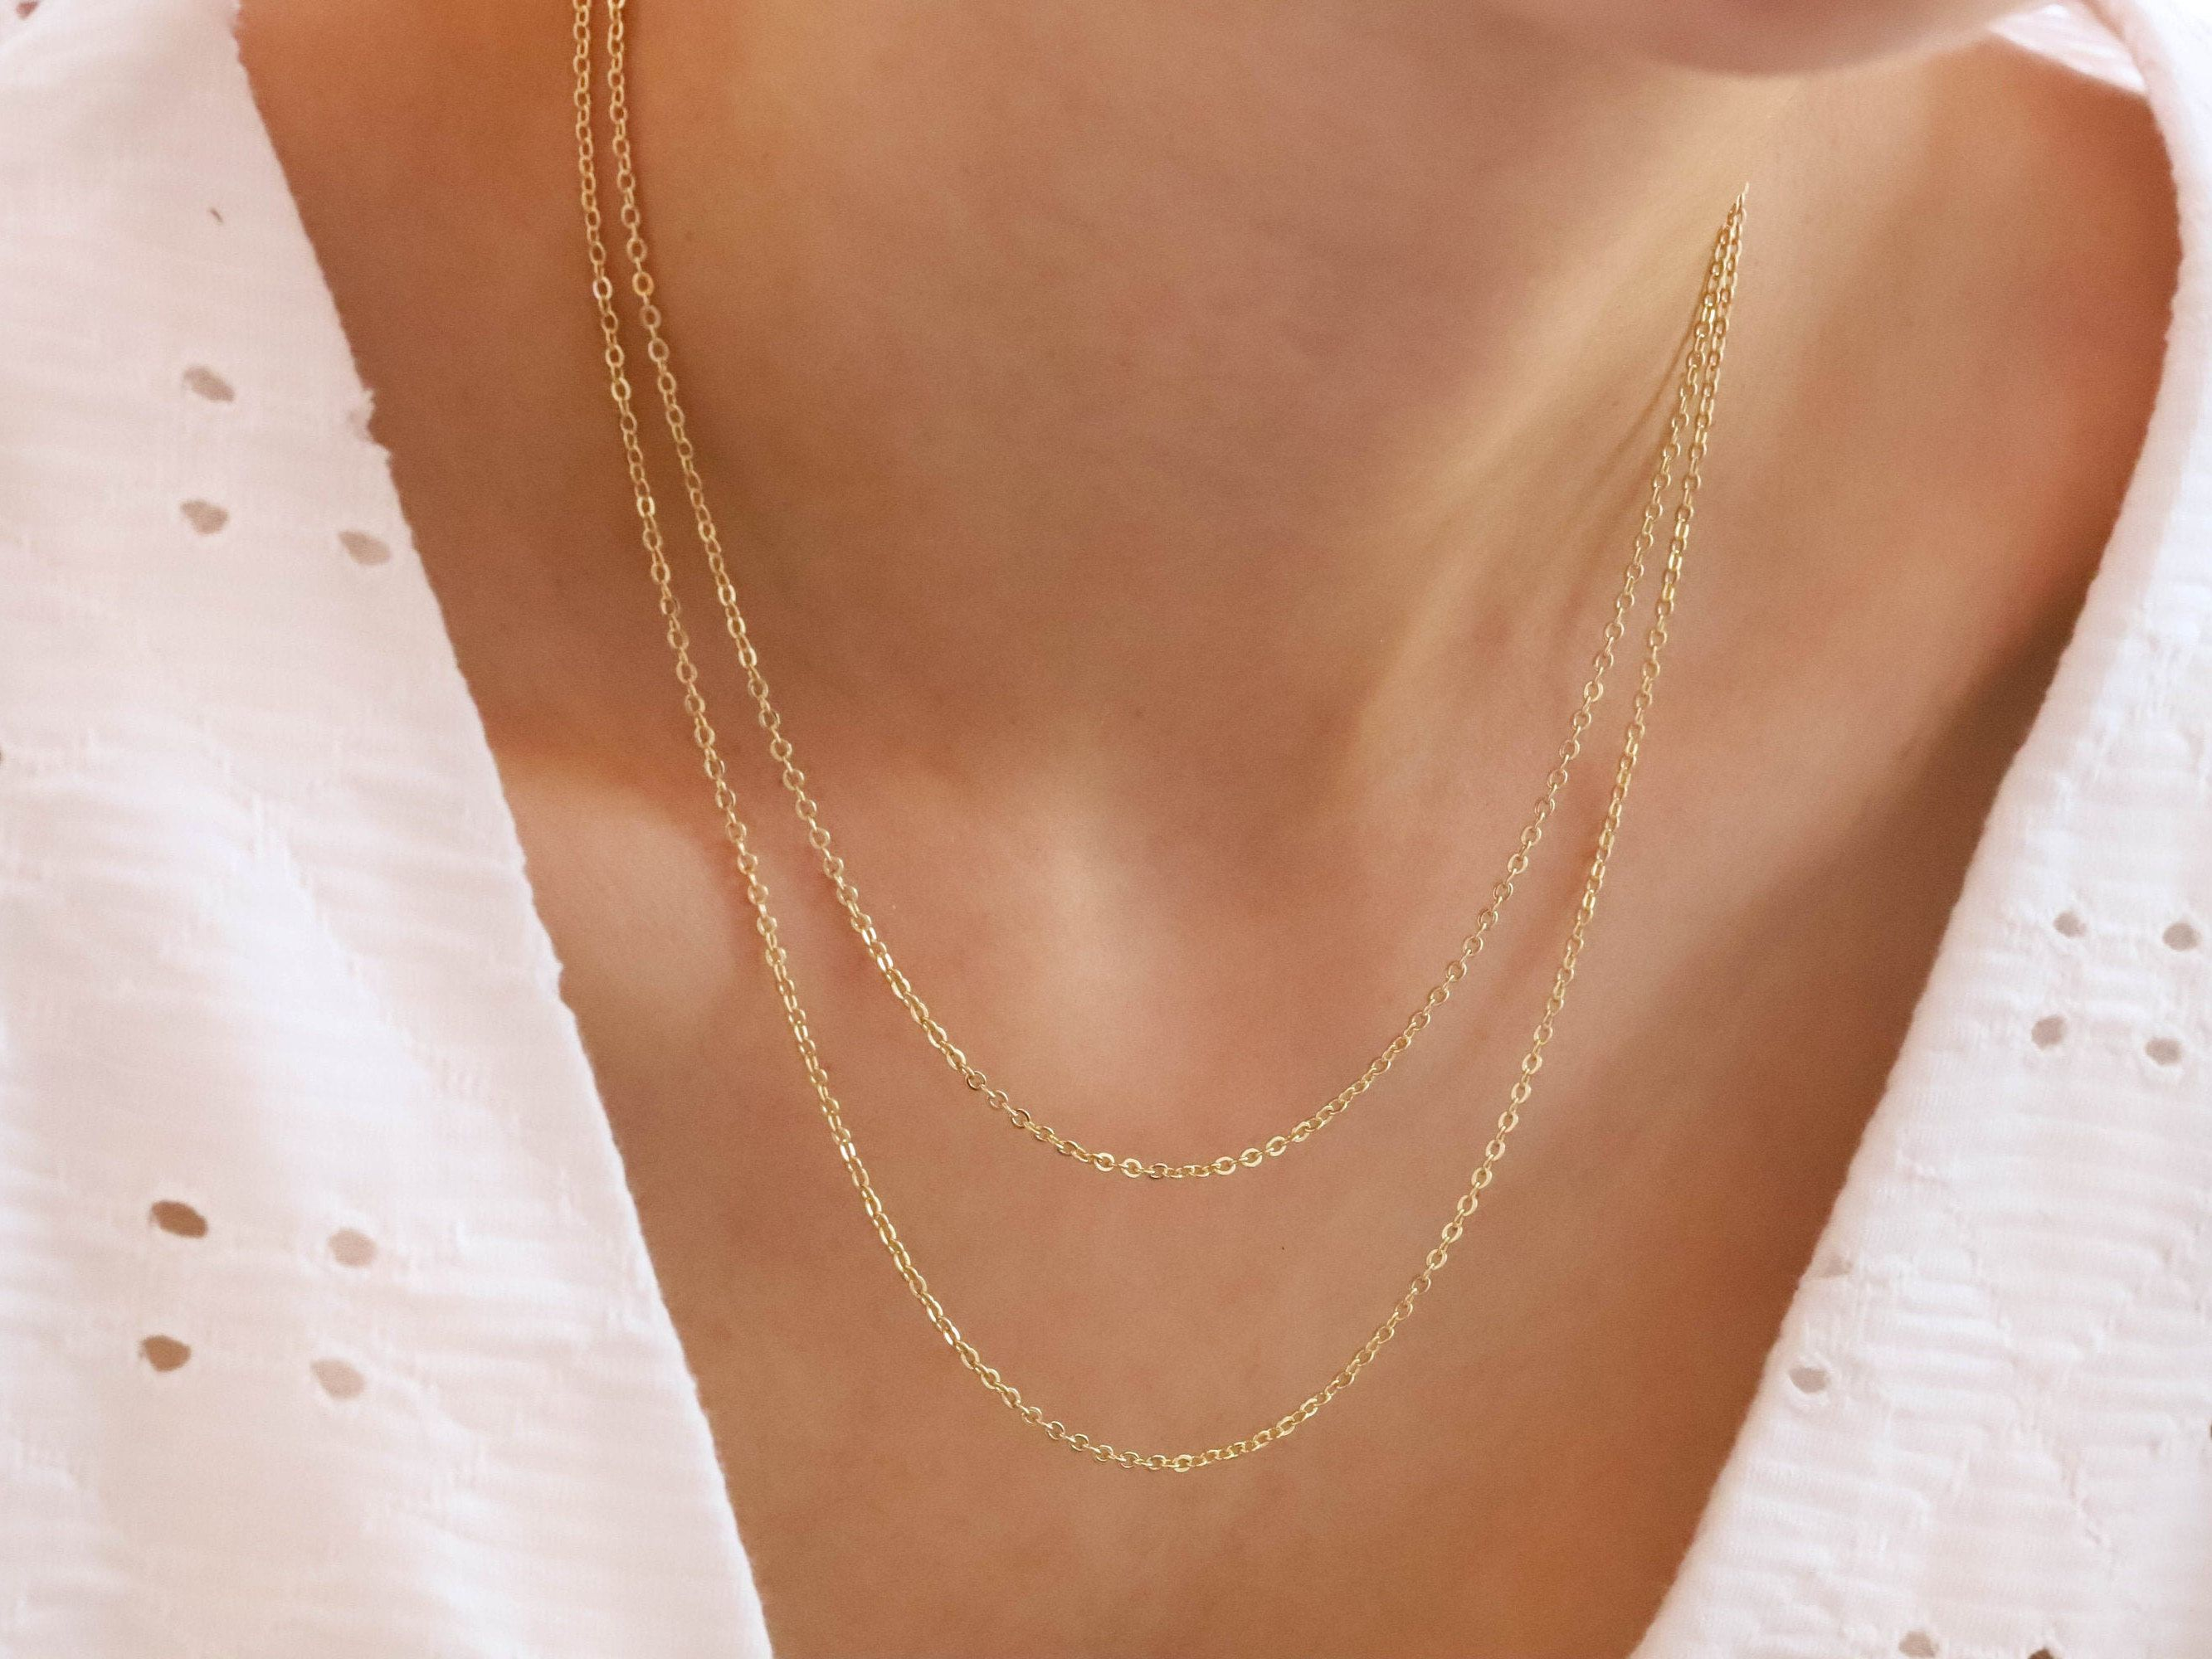 Gold Chain Necklace 14k Gold Necklace Gold Filled Necklace Etsy 14k Gold Necklace Gold Fill Necklace Gold Chain Necklace